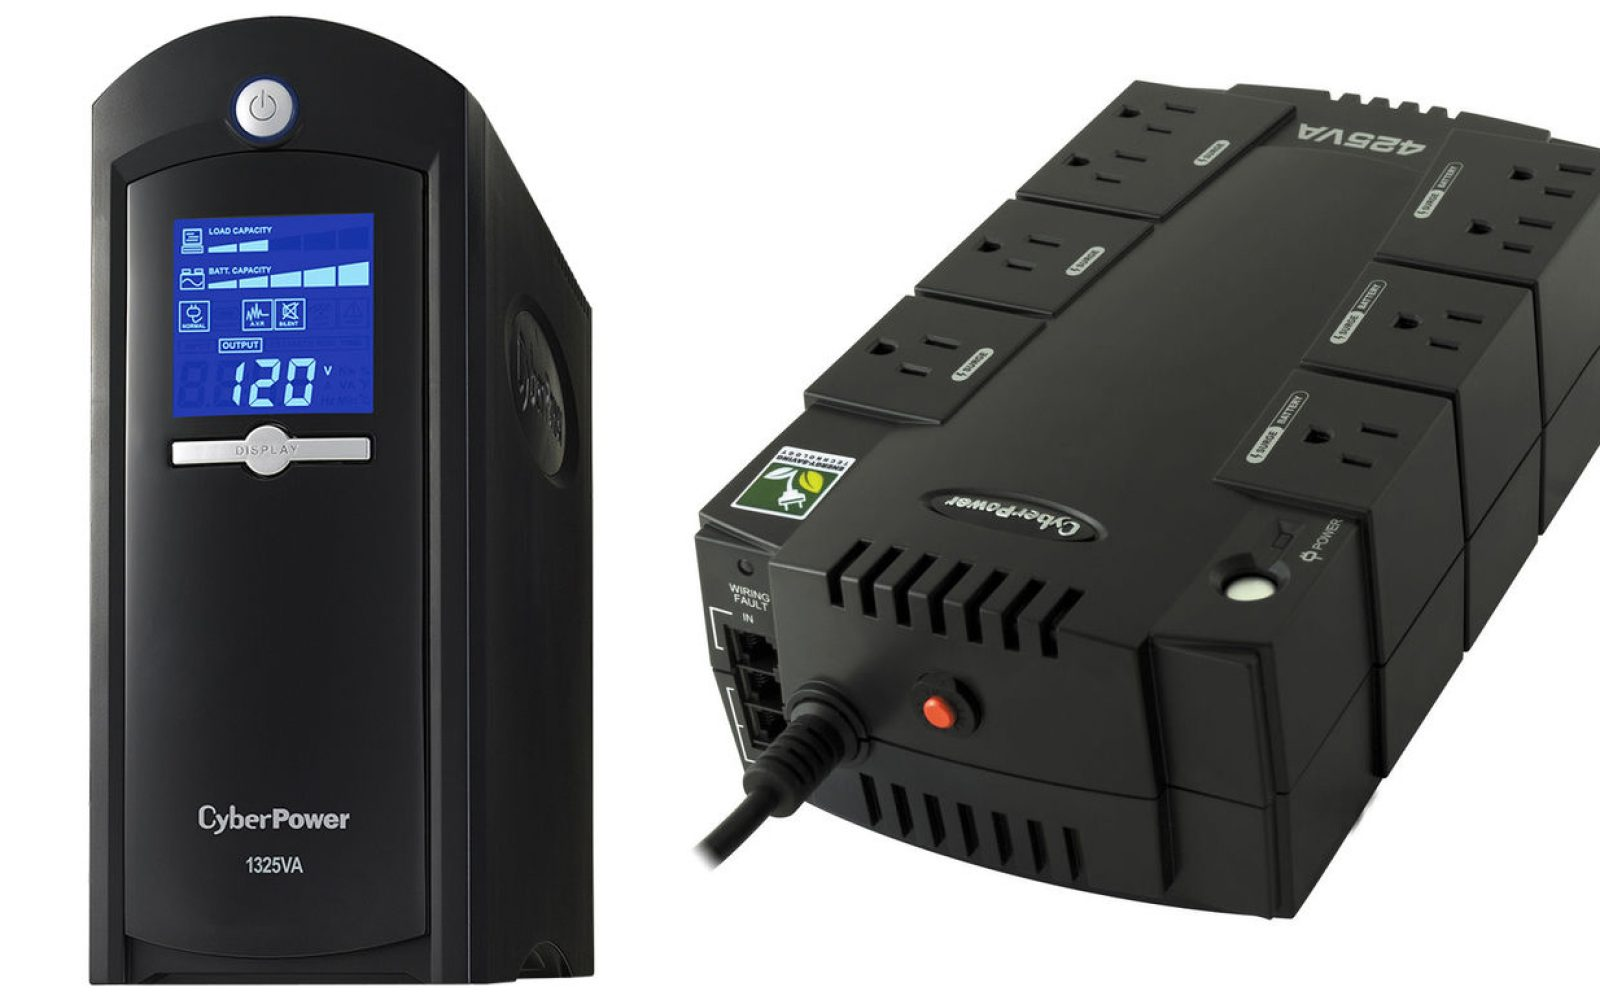 CyberPower UPS systems are an excellent investment, deals from $33